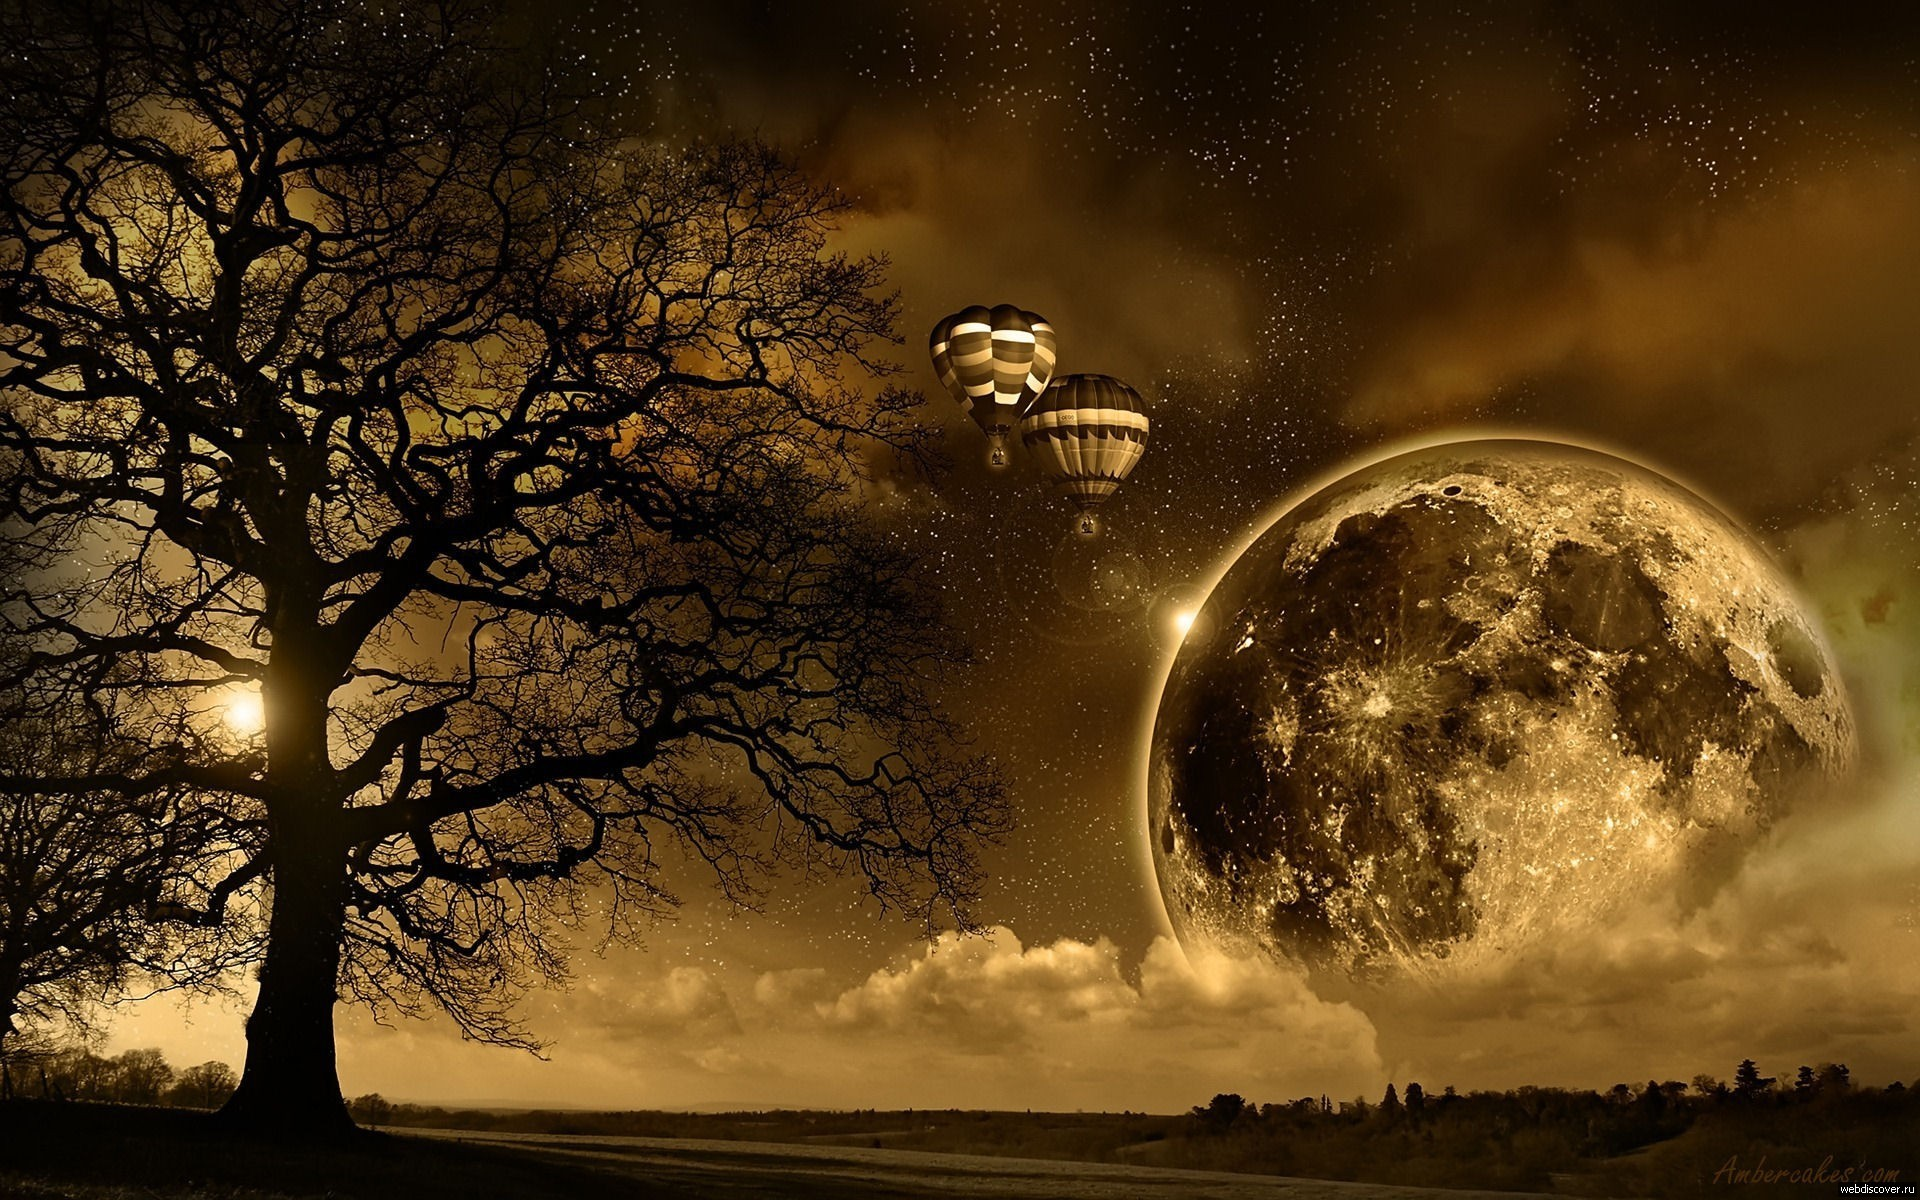 General 1920x1200 space art space hot air balloons landscape digital art sepia